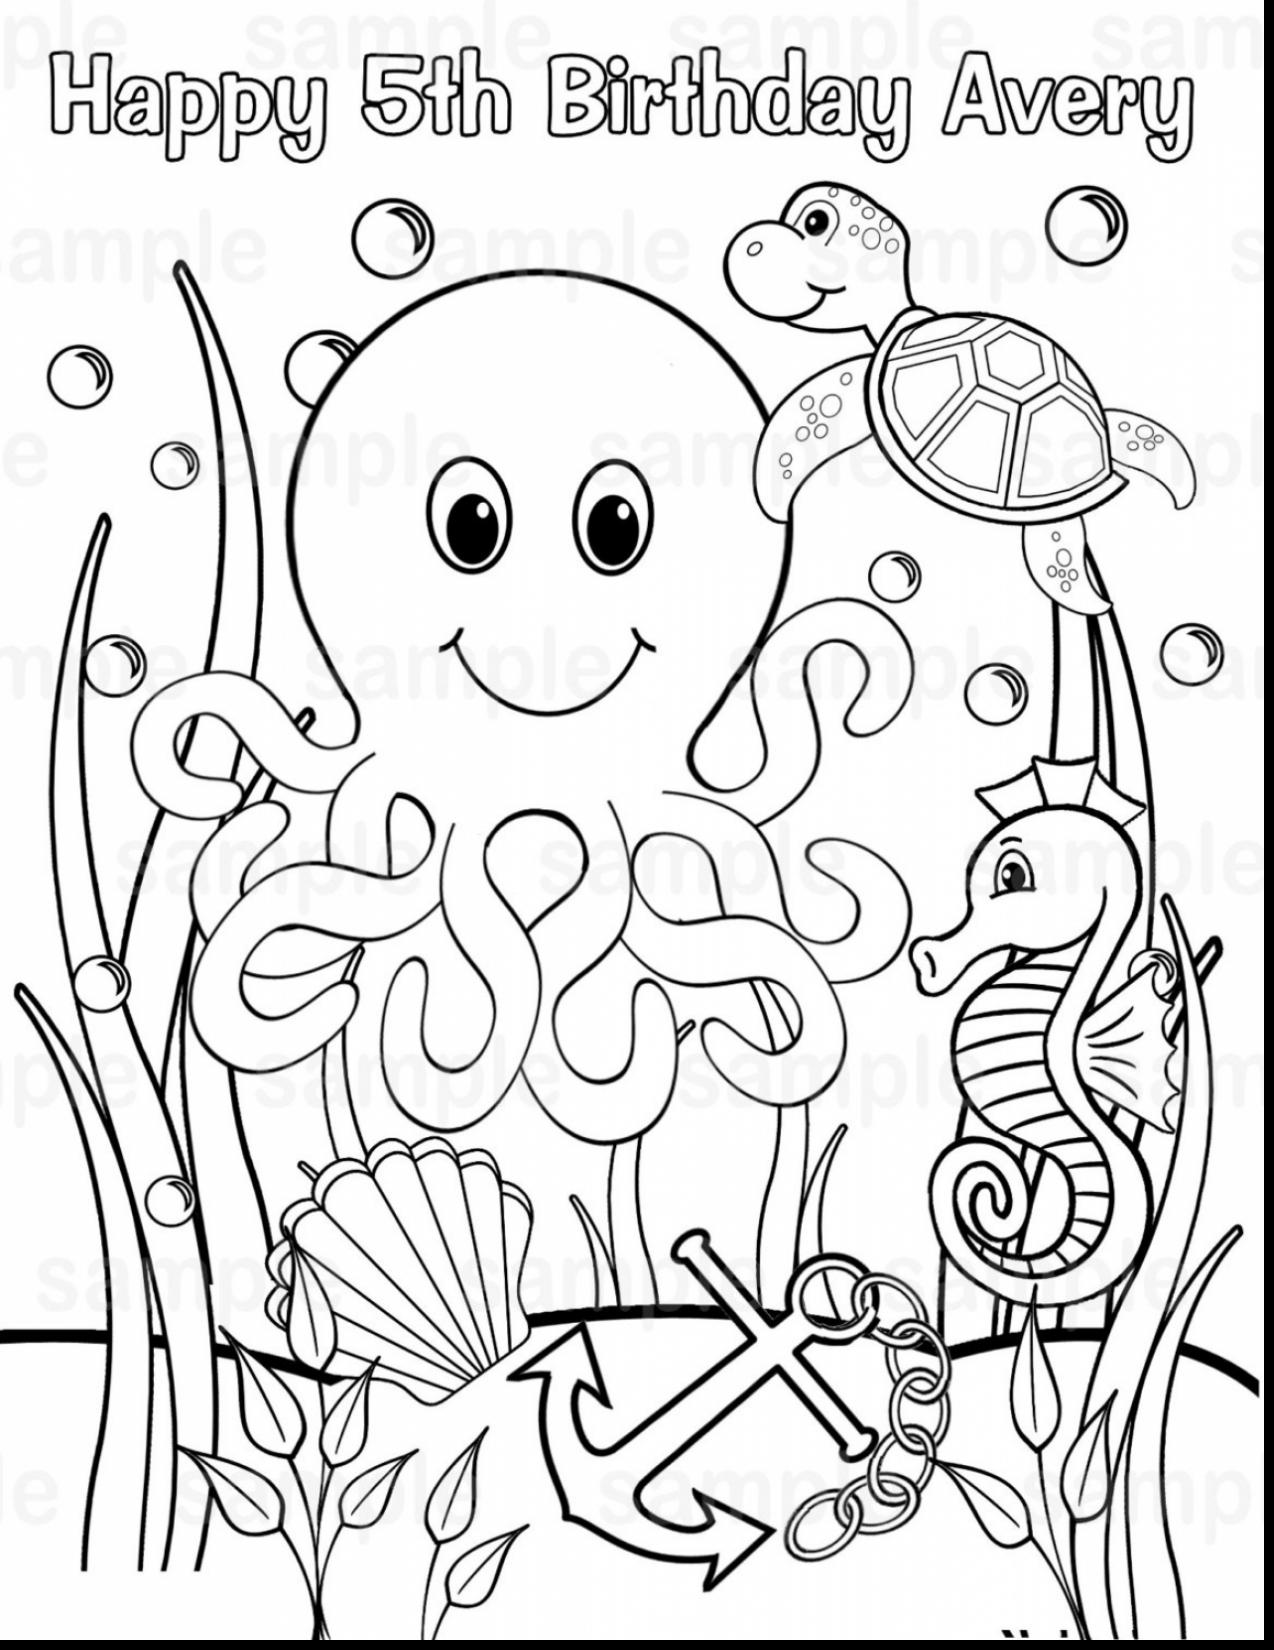 Detailed Animal Coloring Pages At Getcolorings